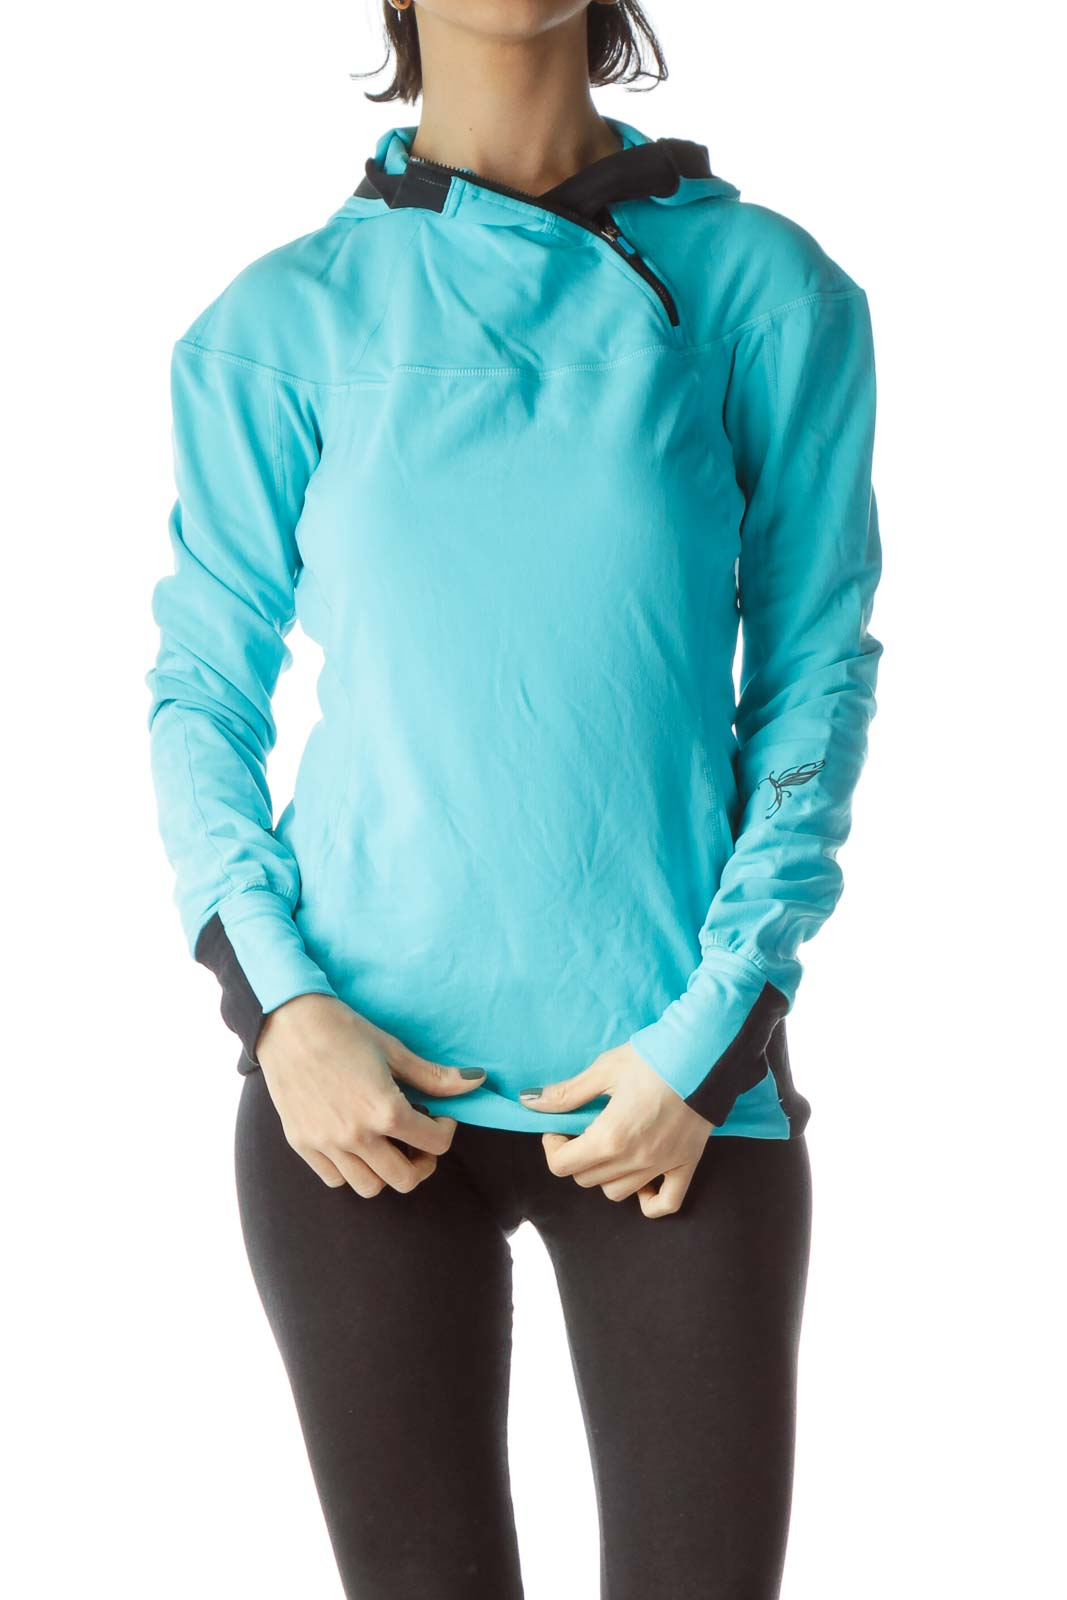 Light Blue Black Zippered Stretch Sports Jacket